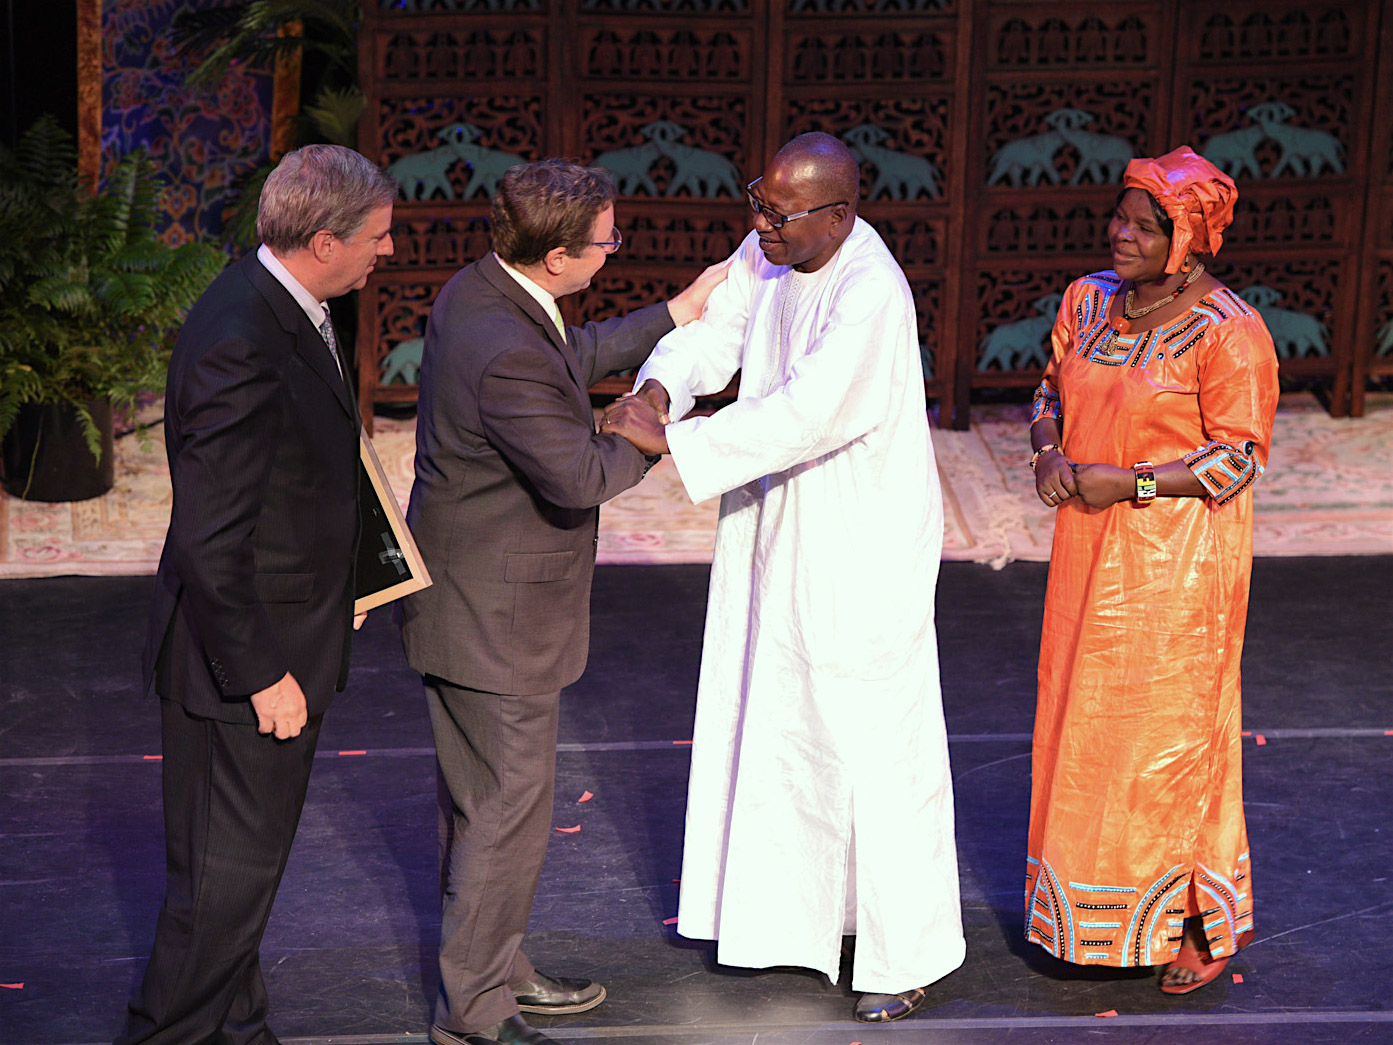 1.	Accepting the award for the Mali Elephant Project was project field coordinator Nomba Ganame and Aoua Cherif Doumbia, a colleague representing the government of Mali.  Presenting the award were Cristián Samper, CEO of the Wildlife Conservation Society (left) and Achim Steiner, Administrator of the UN Development Programme.